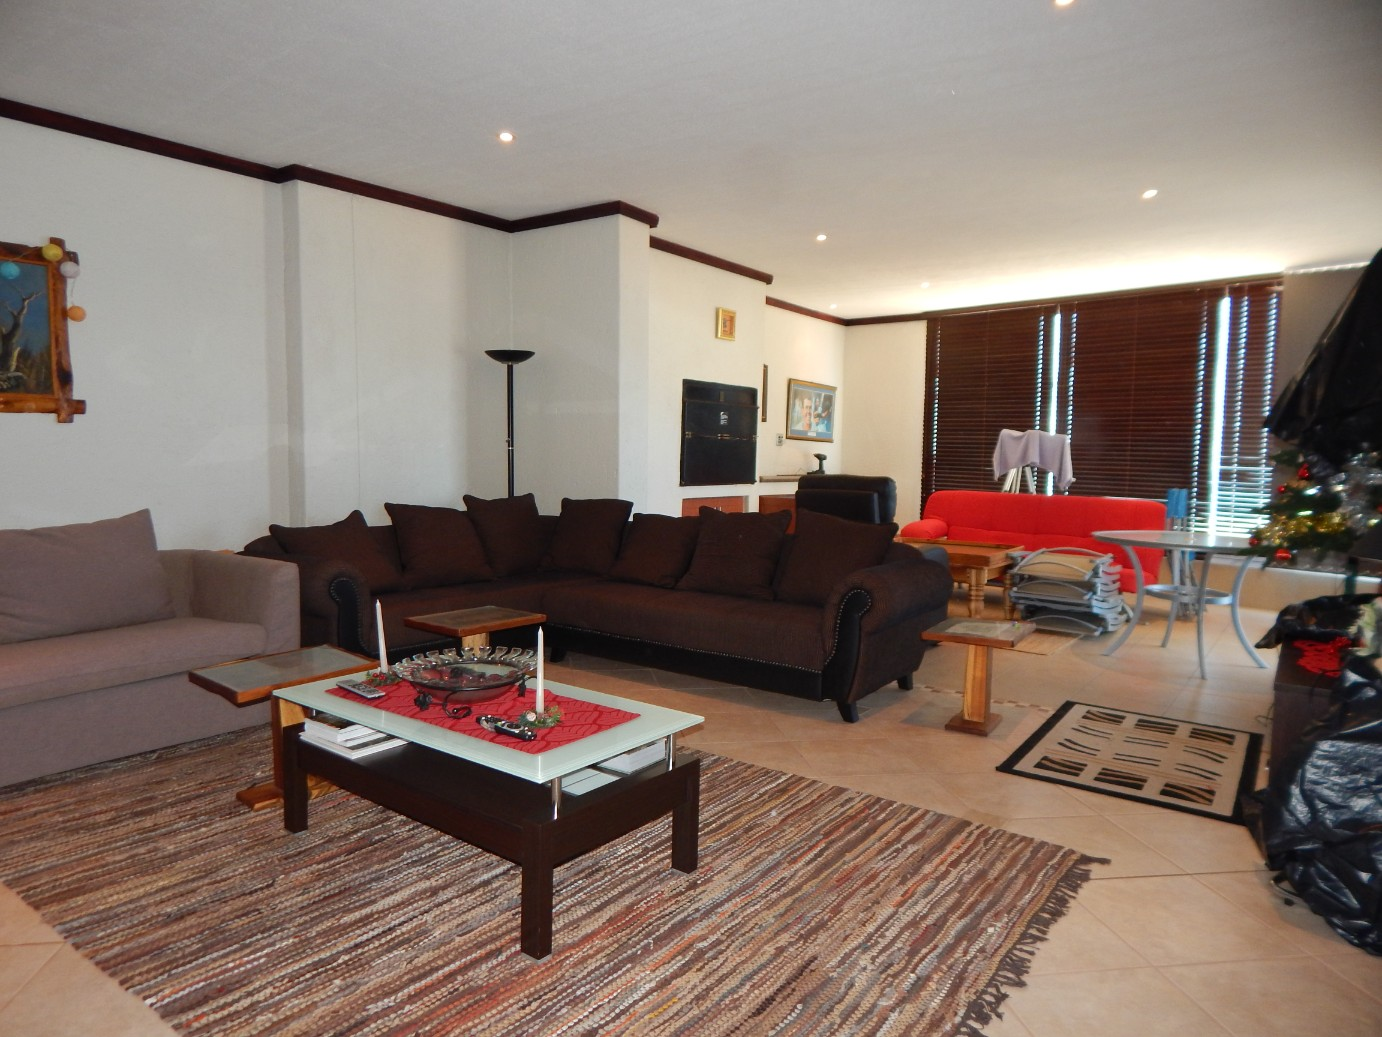 3 Bedroom Apartment for sale in Diaz Beach ENT0043723 : photo#3